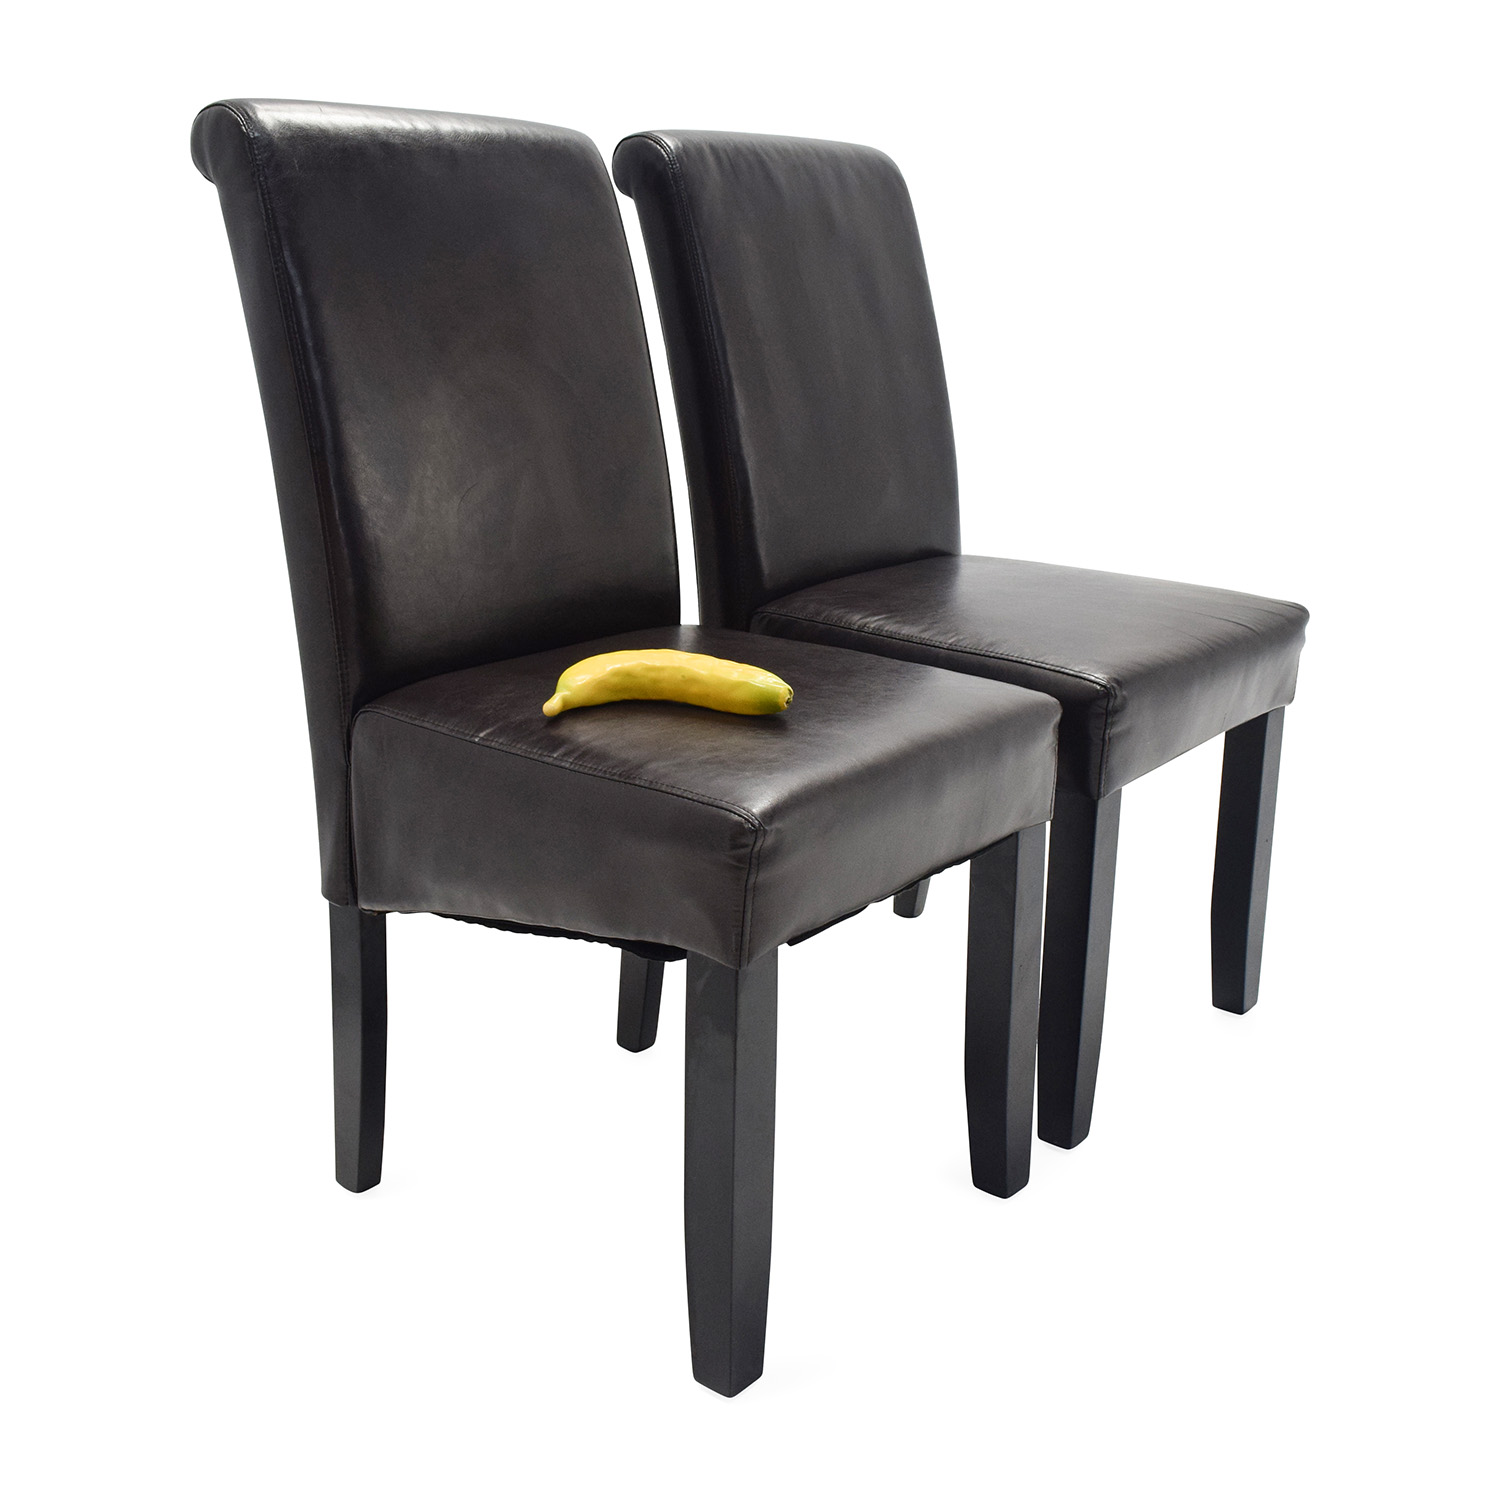 espresso dining chair spandex covers on ebay 72 off unknown brand leather chairs